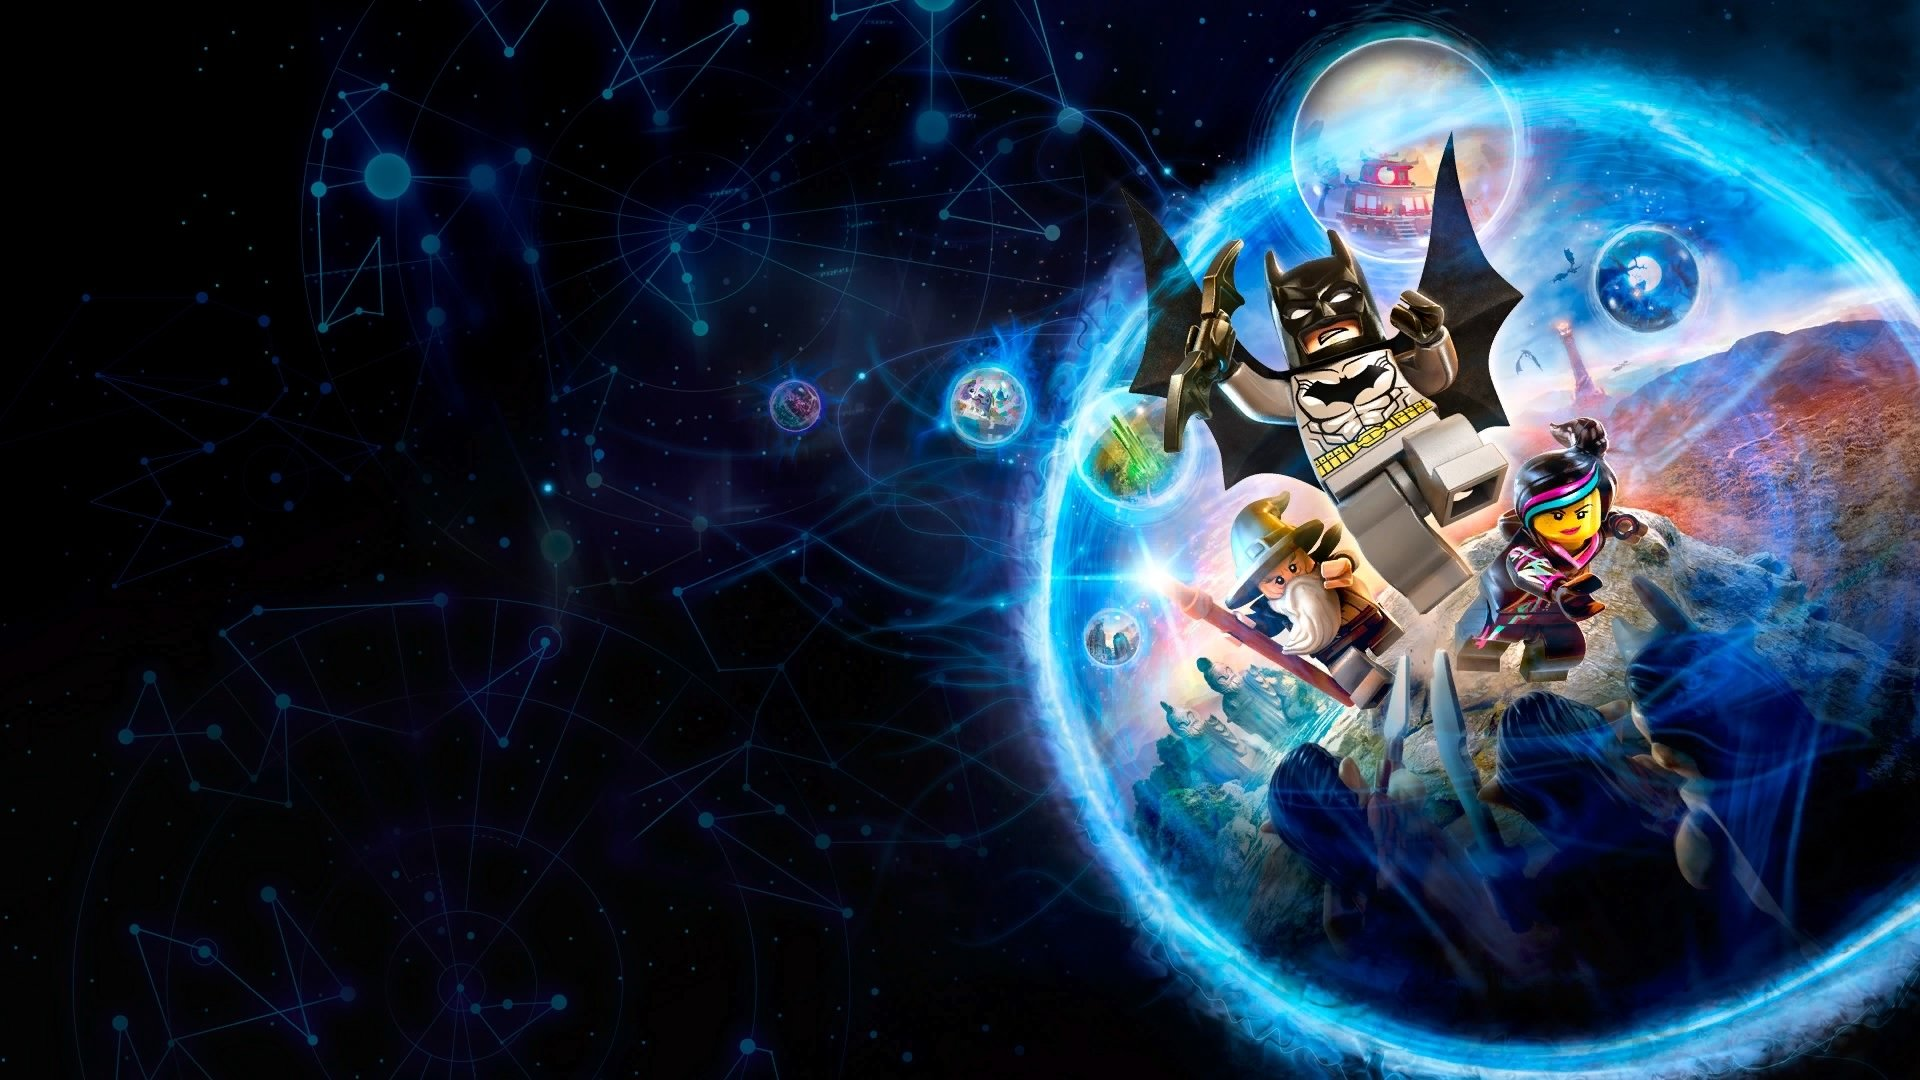 lego dimensions wallpaper  3 LEGO Dimensions HD Wallpapers | Background Images - Wallpaper Abyss